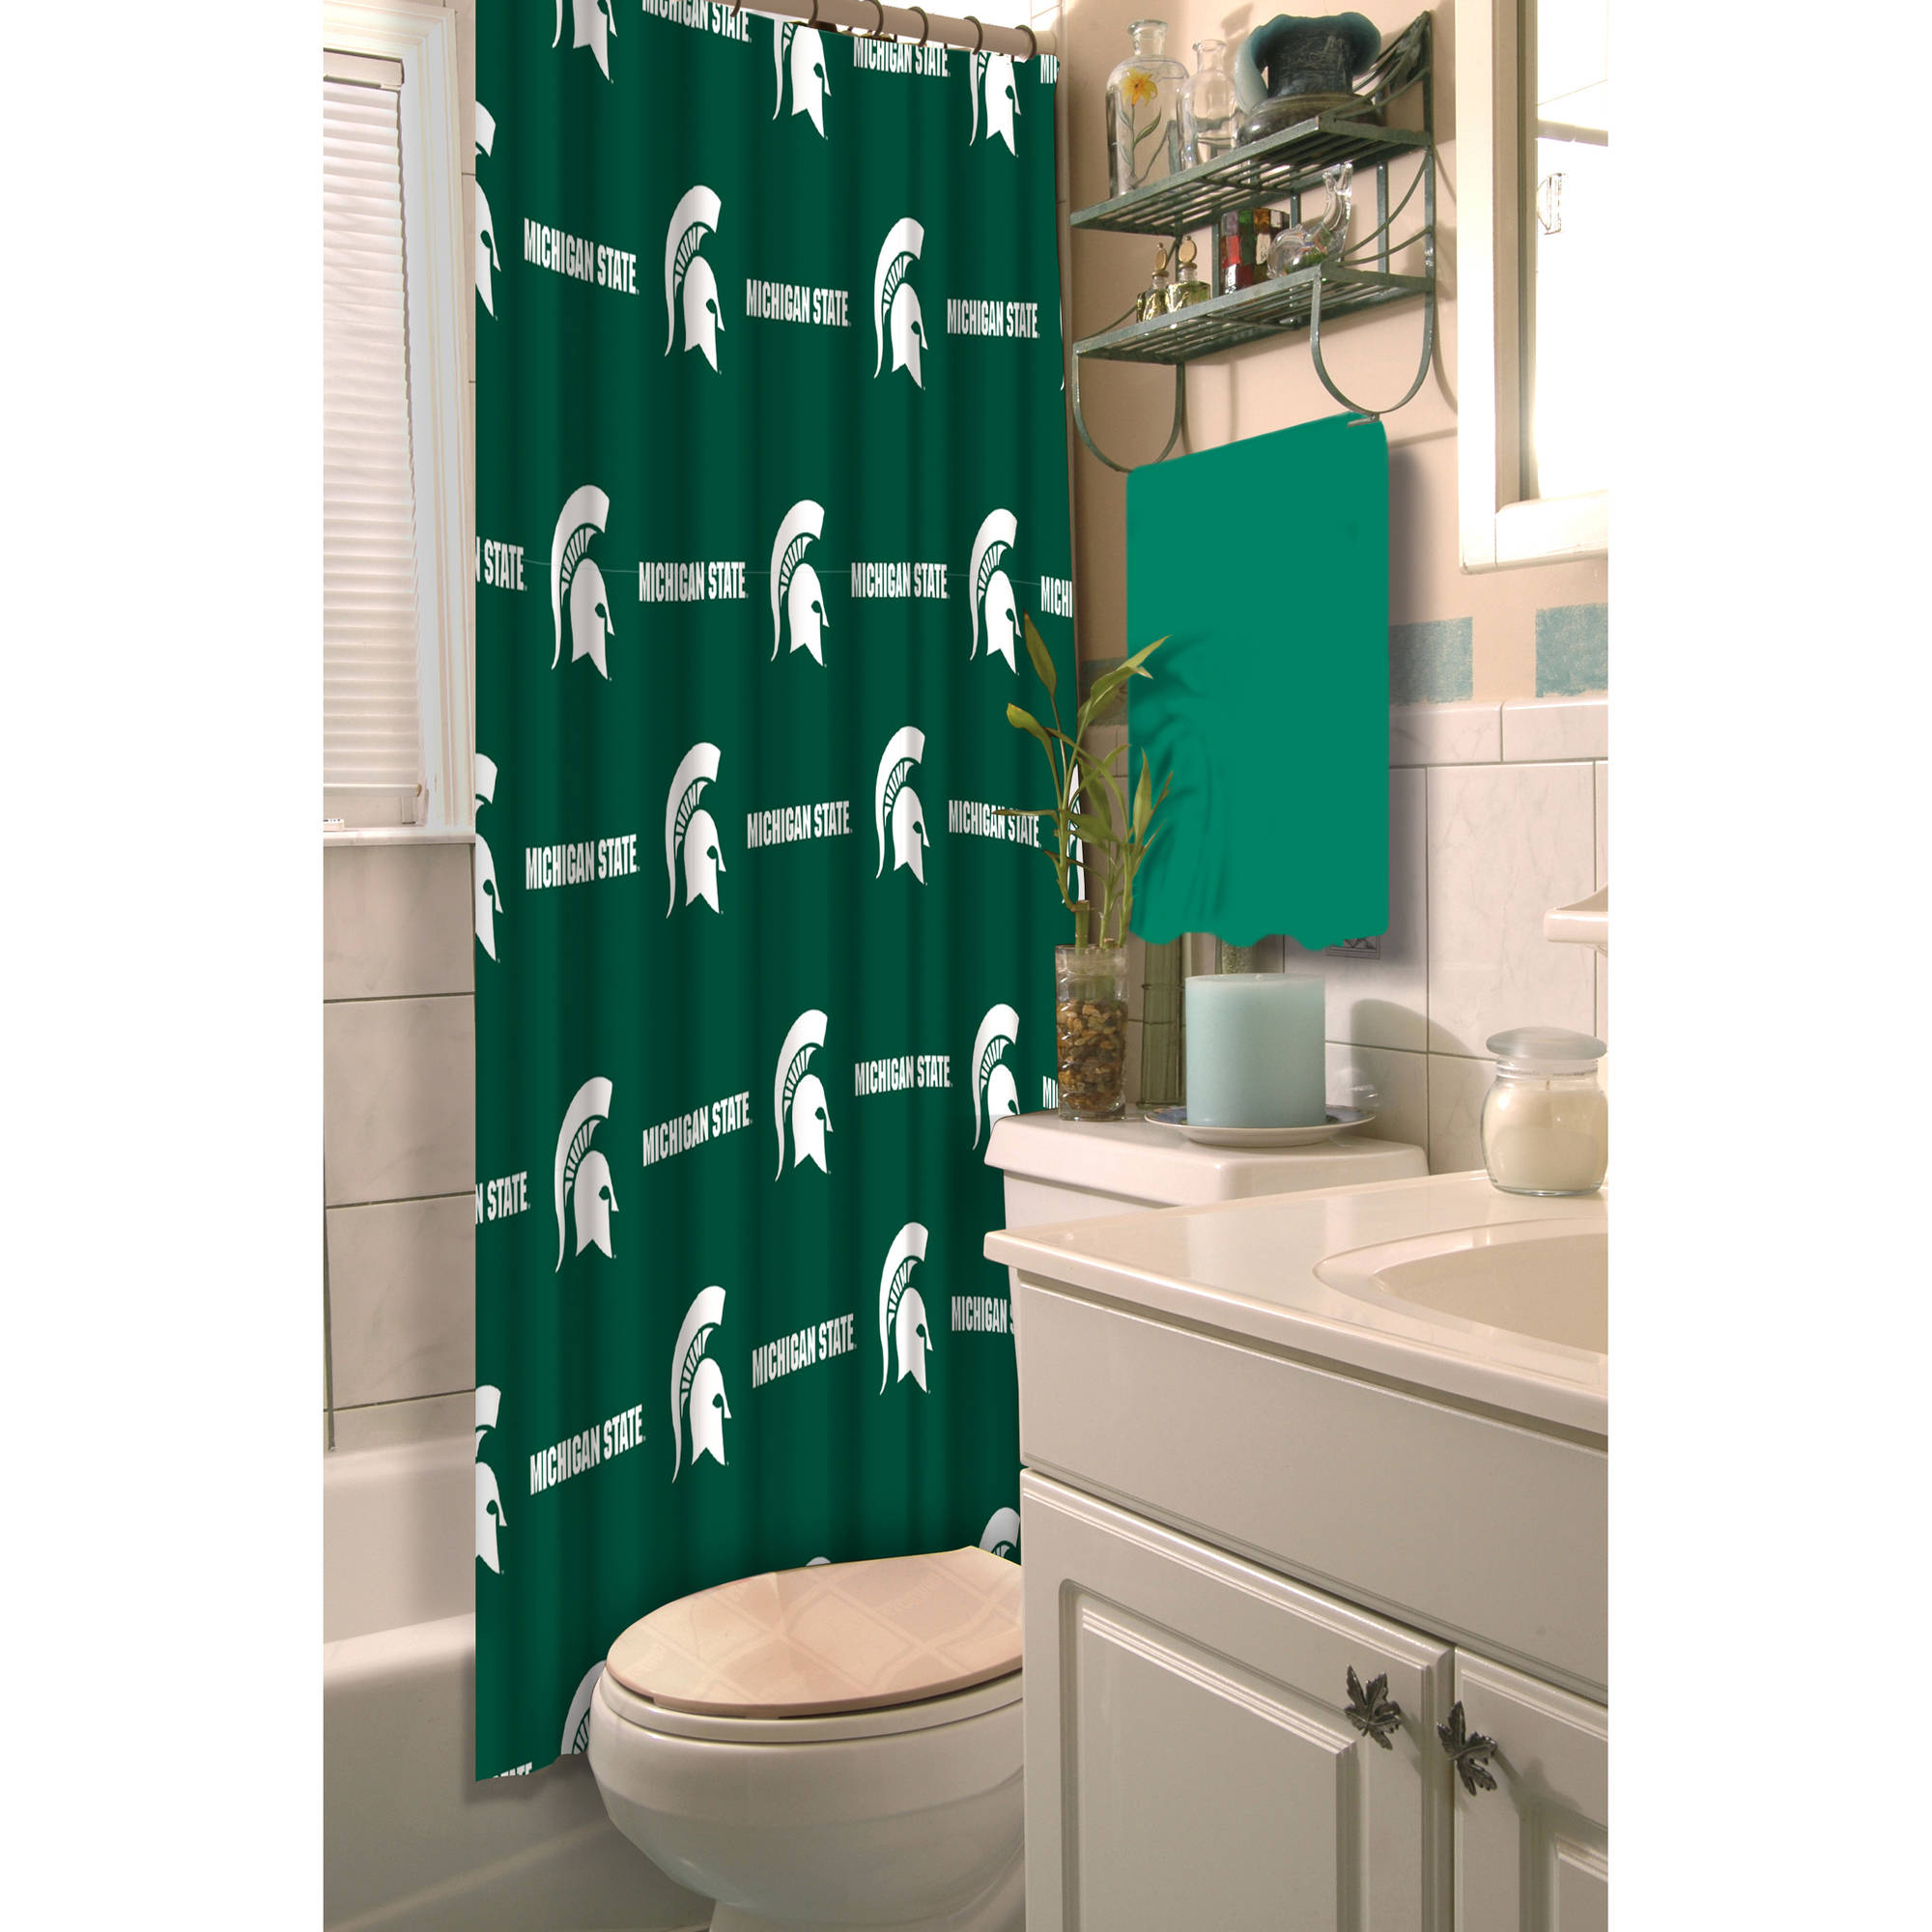 NCAA Shower Curtain, Michigan State